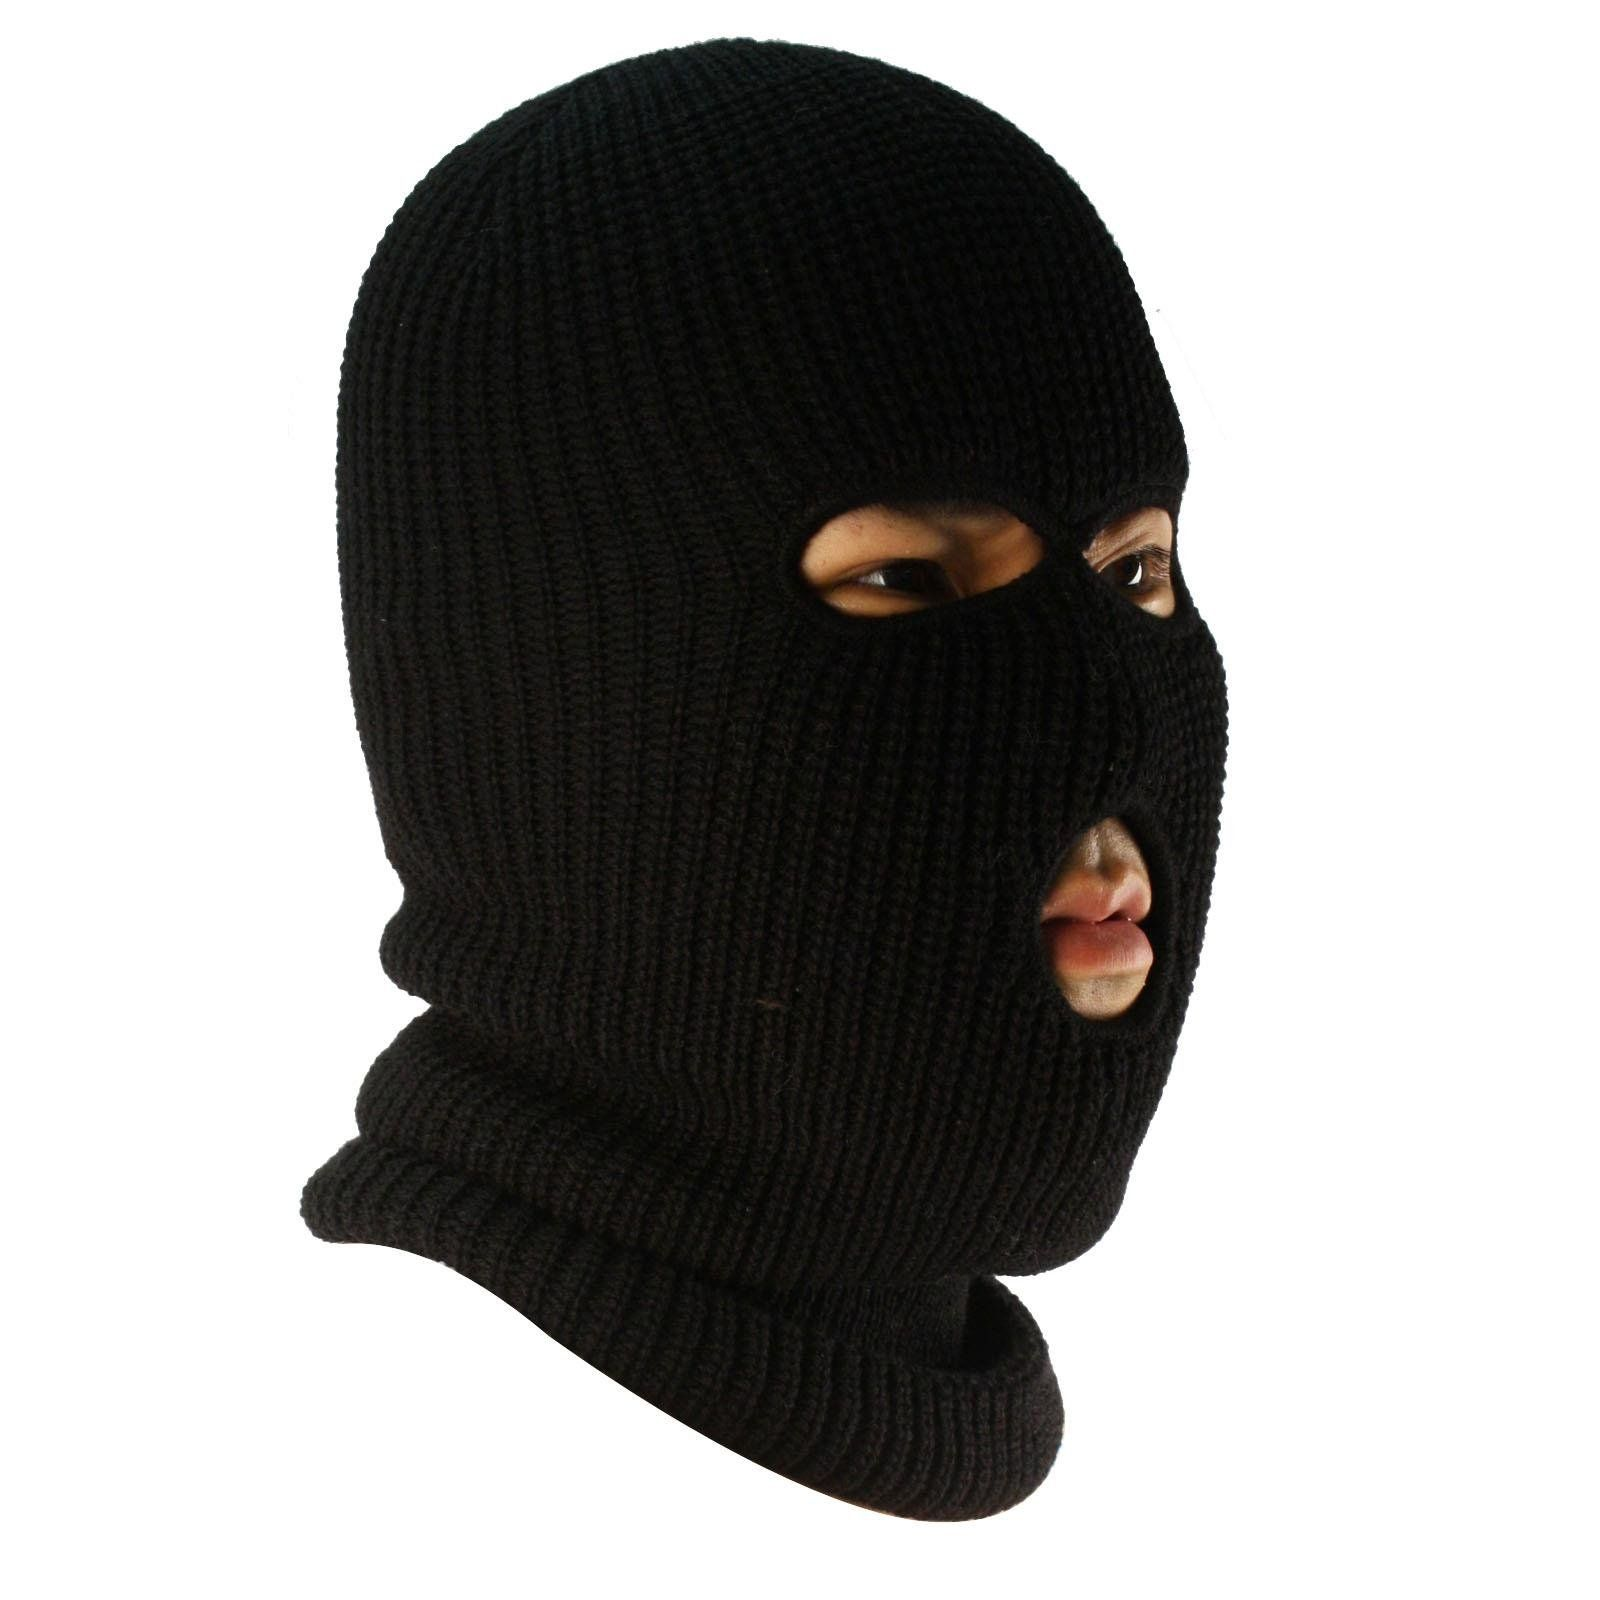 1c86a2213de6 Men s Winter Knit Ski Sports Long Neck warmer Balaclava 3 Hole Face Mask  Black. Fabrication